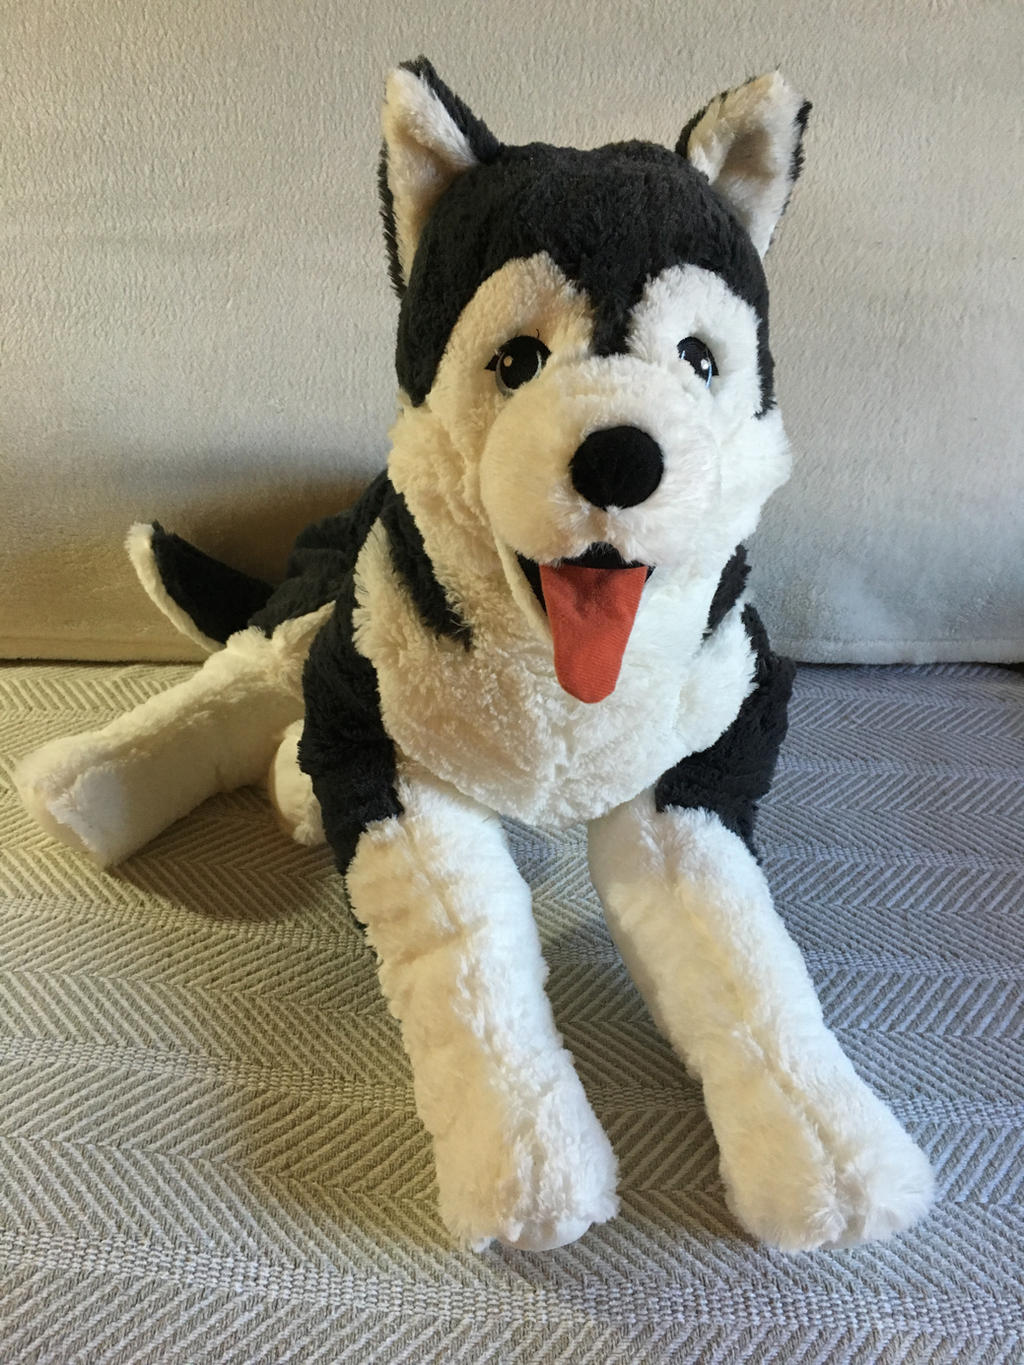 IKEA Husky Plush By Webkinzjourneys IKEA Husky Plush By Webkinzjourneys